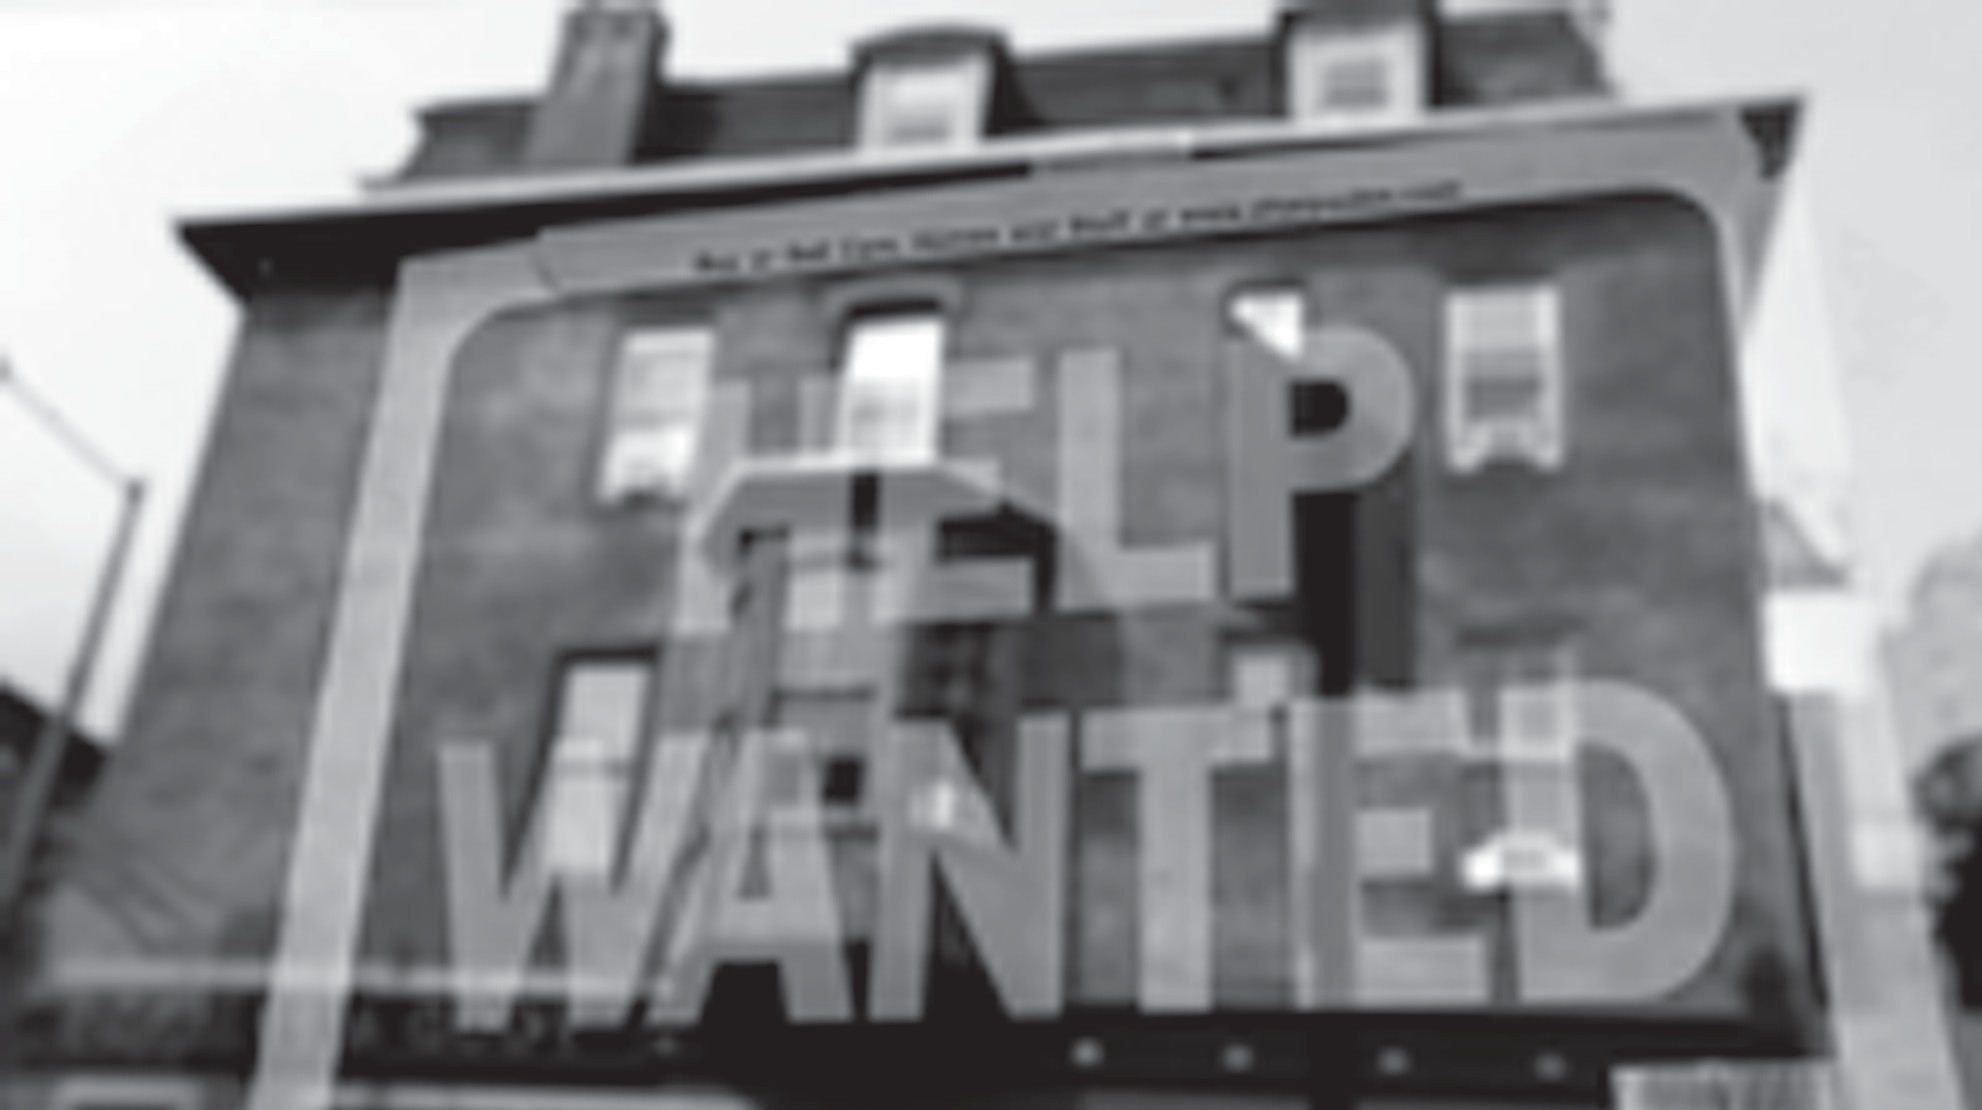 In this 2013 file photo, a Philadelphia business displays a help wanted sign in its storefront.